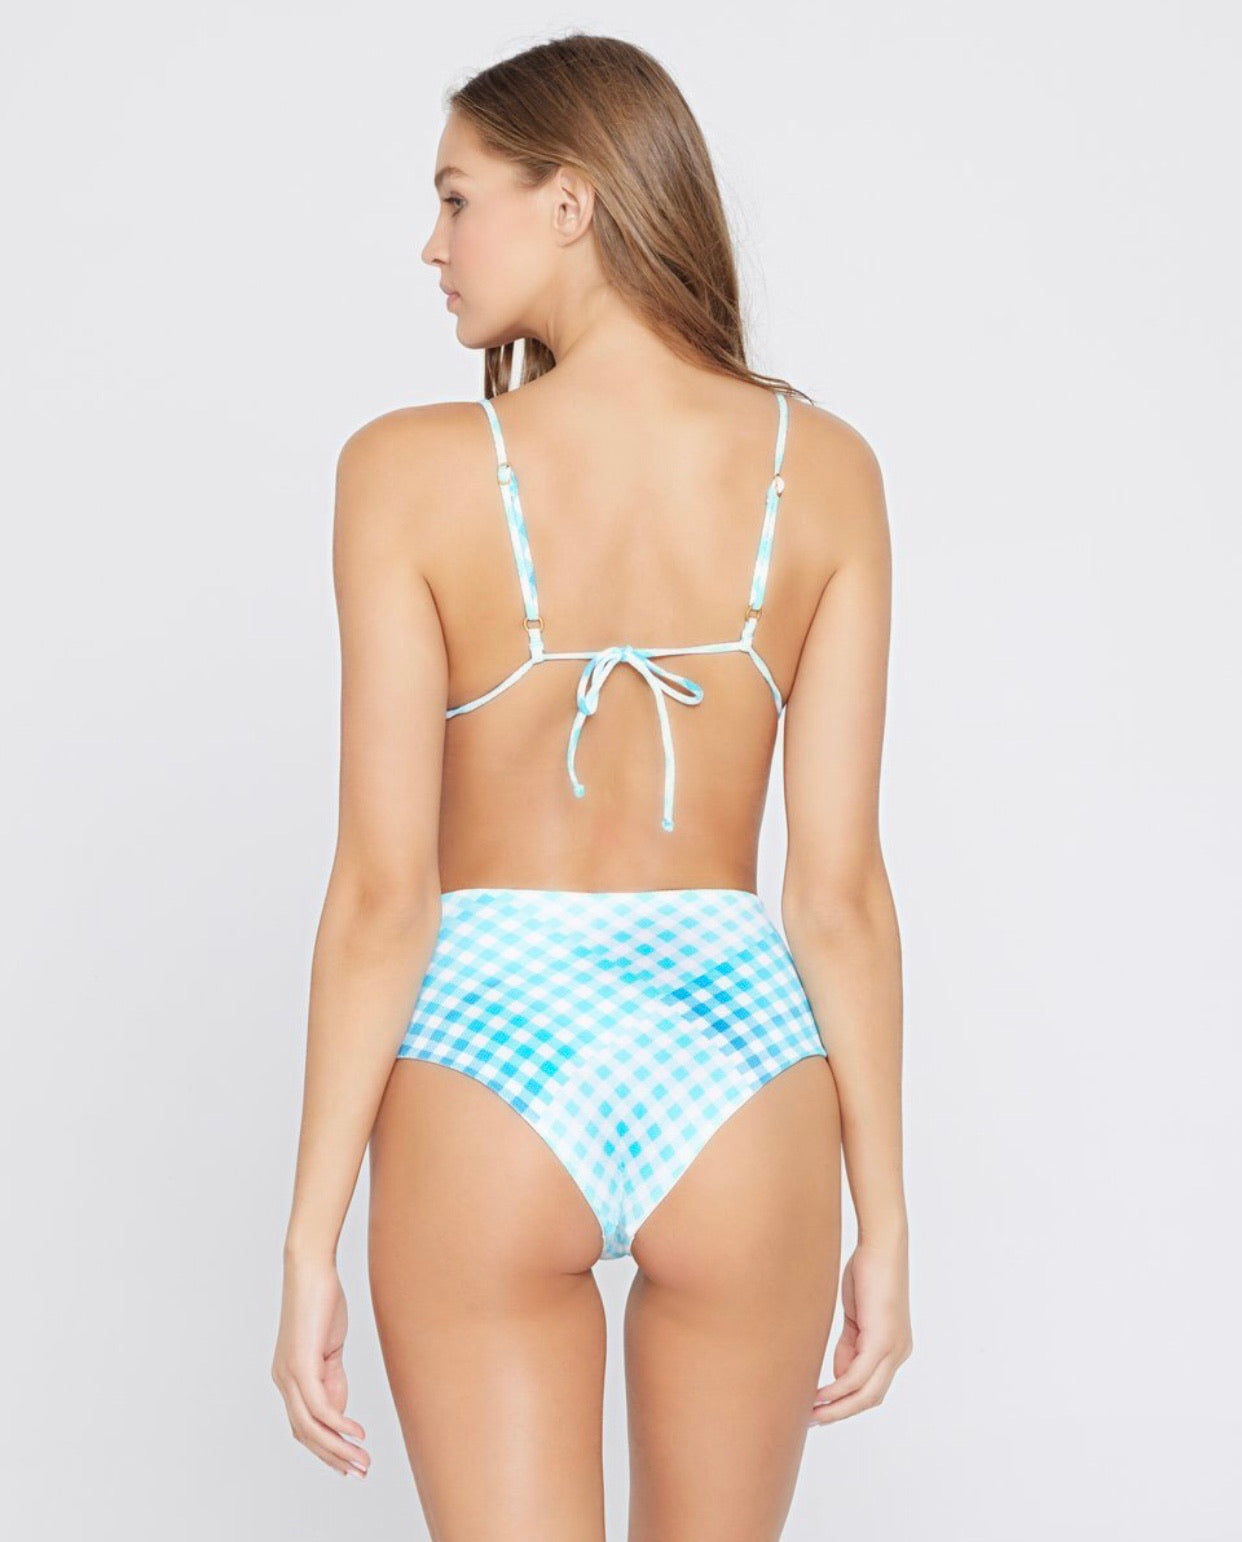 Picnic Plaid Brittany Top & Portia Bottom by L*Space